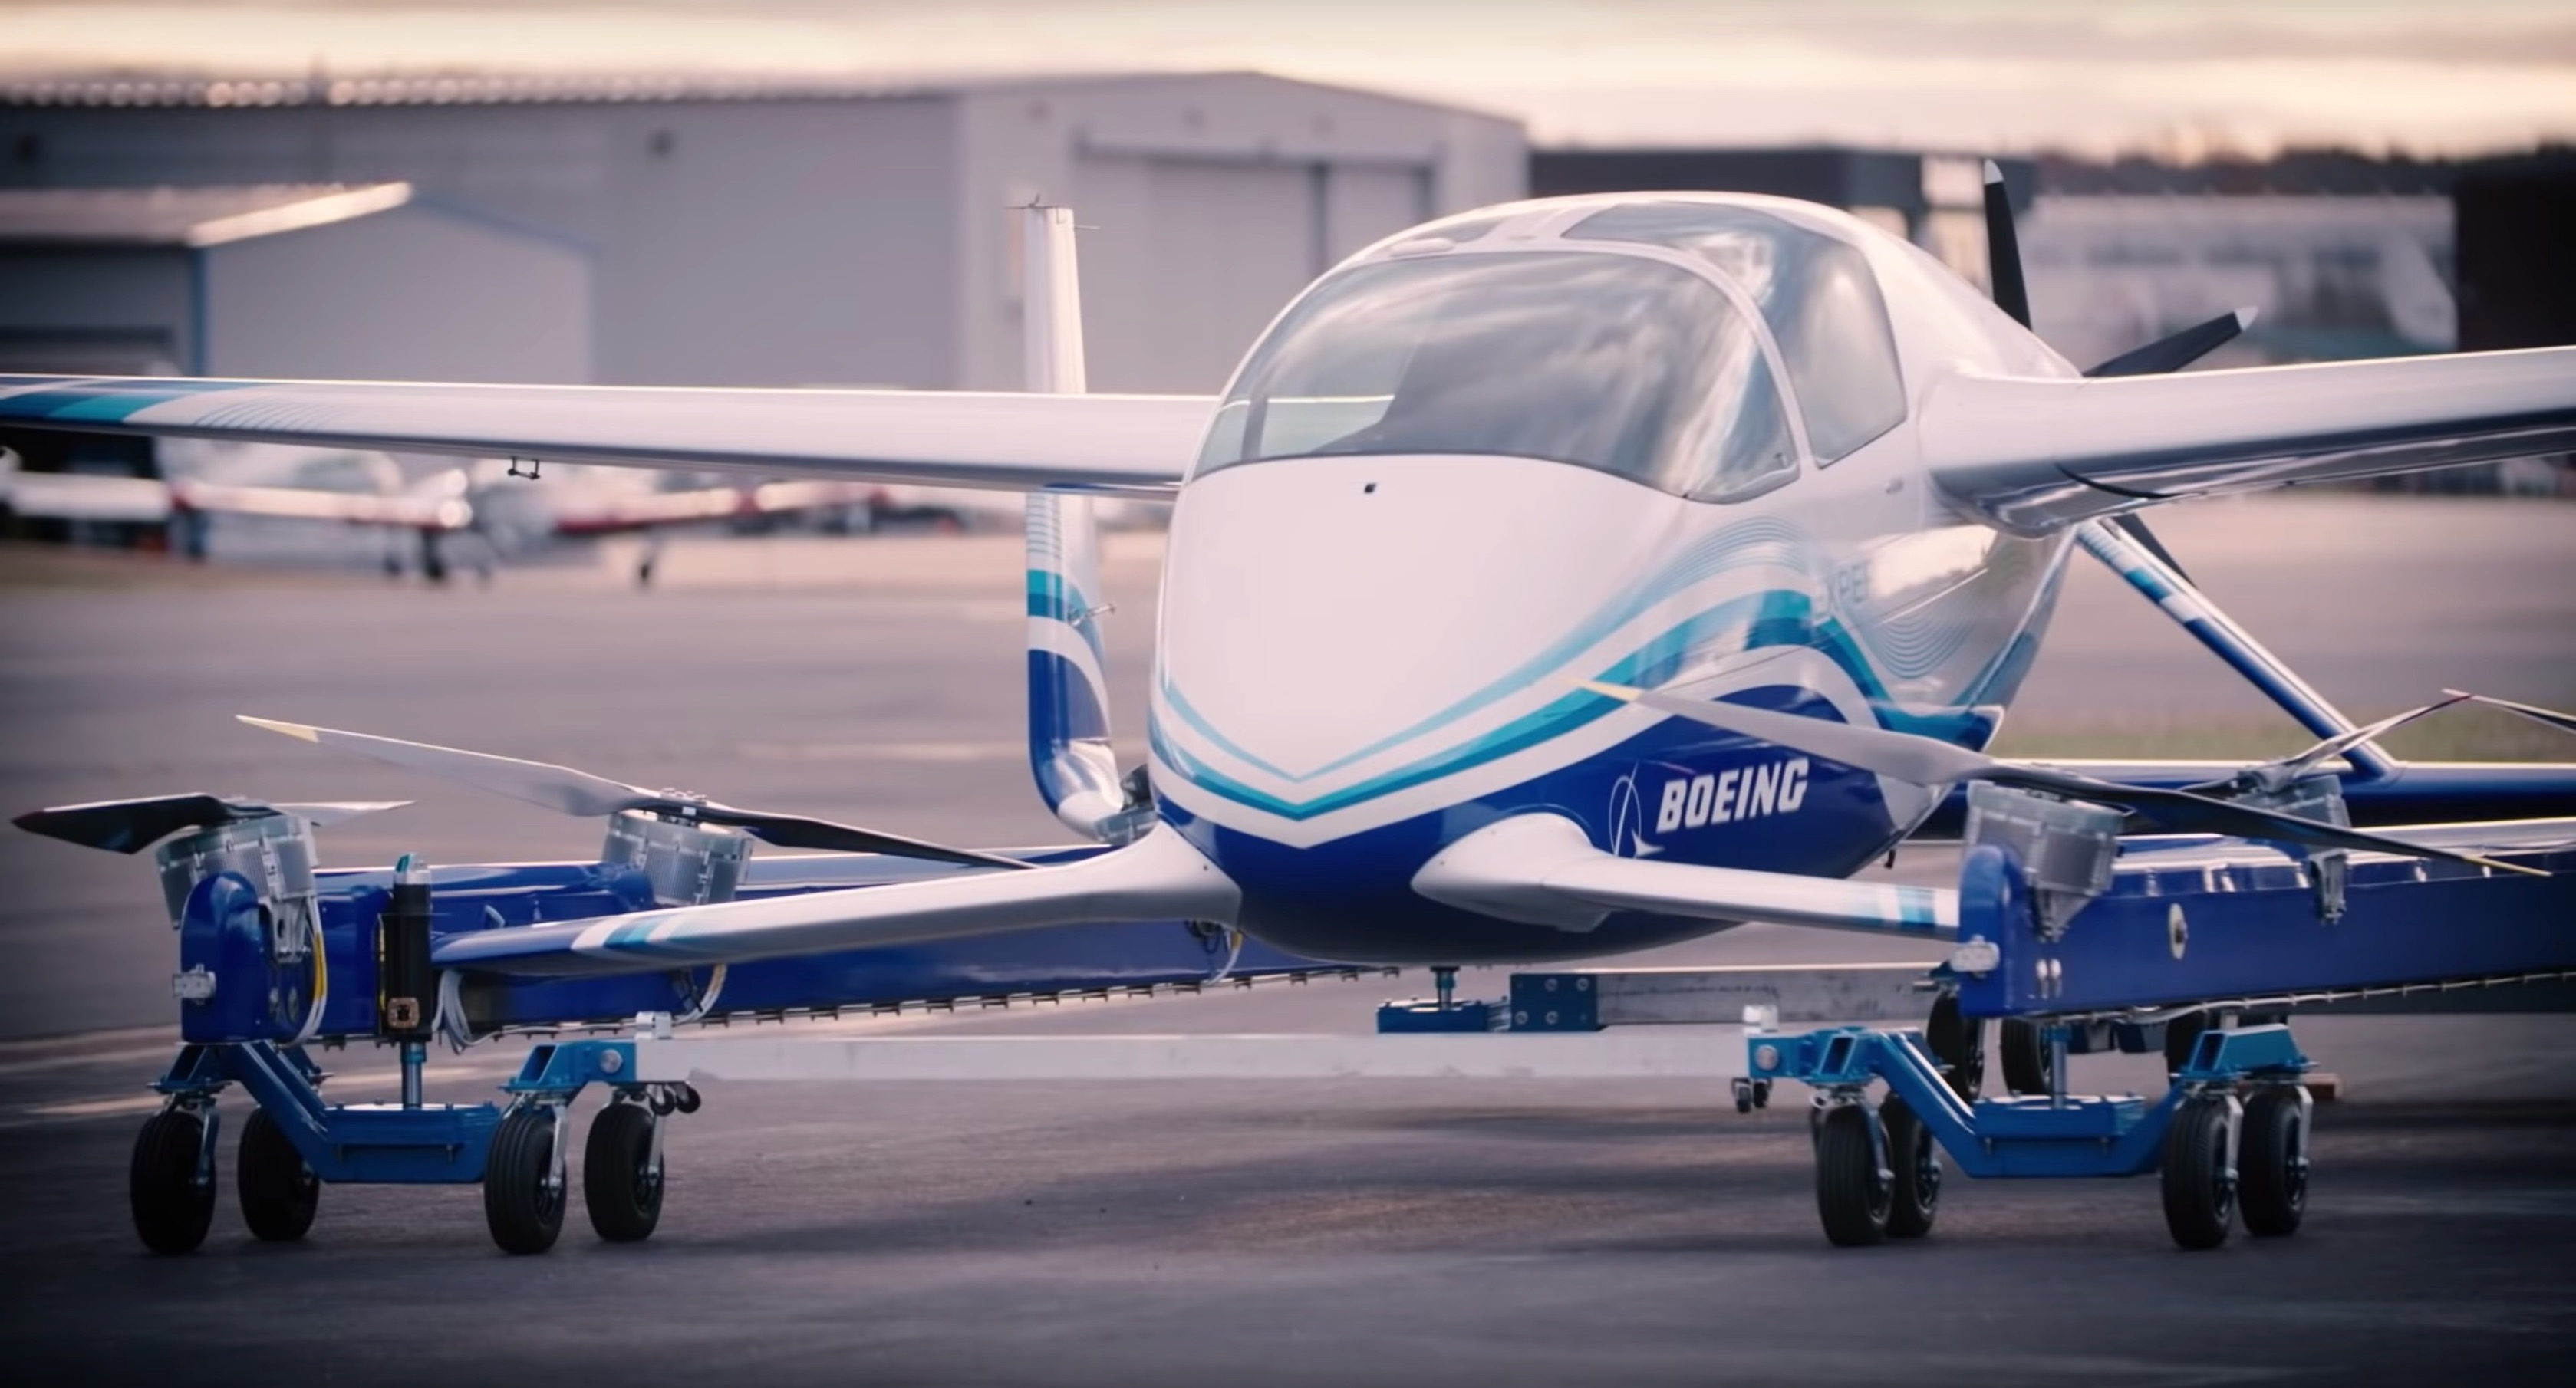 Boeing Completes First Test Flight For Electric Penger Craft Prototype